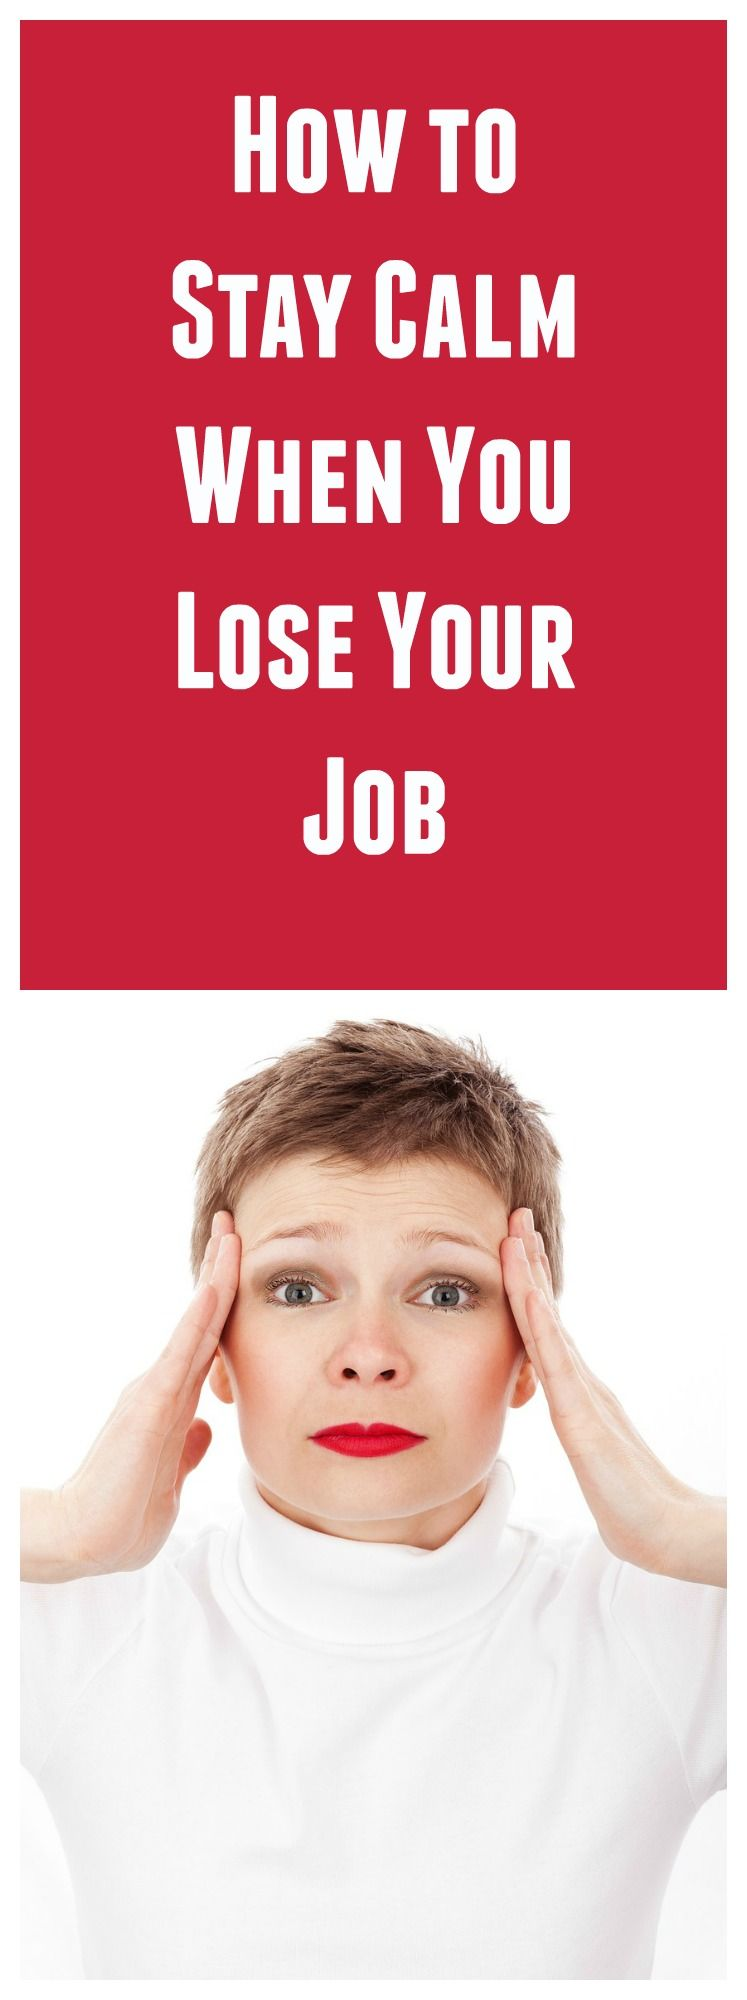 How To Stay Calm When You Lose Your Job Job, Losing you